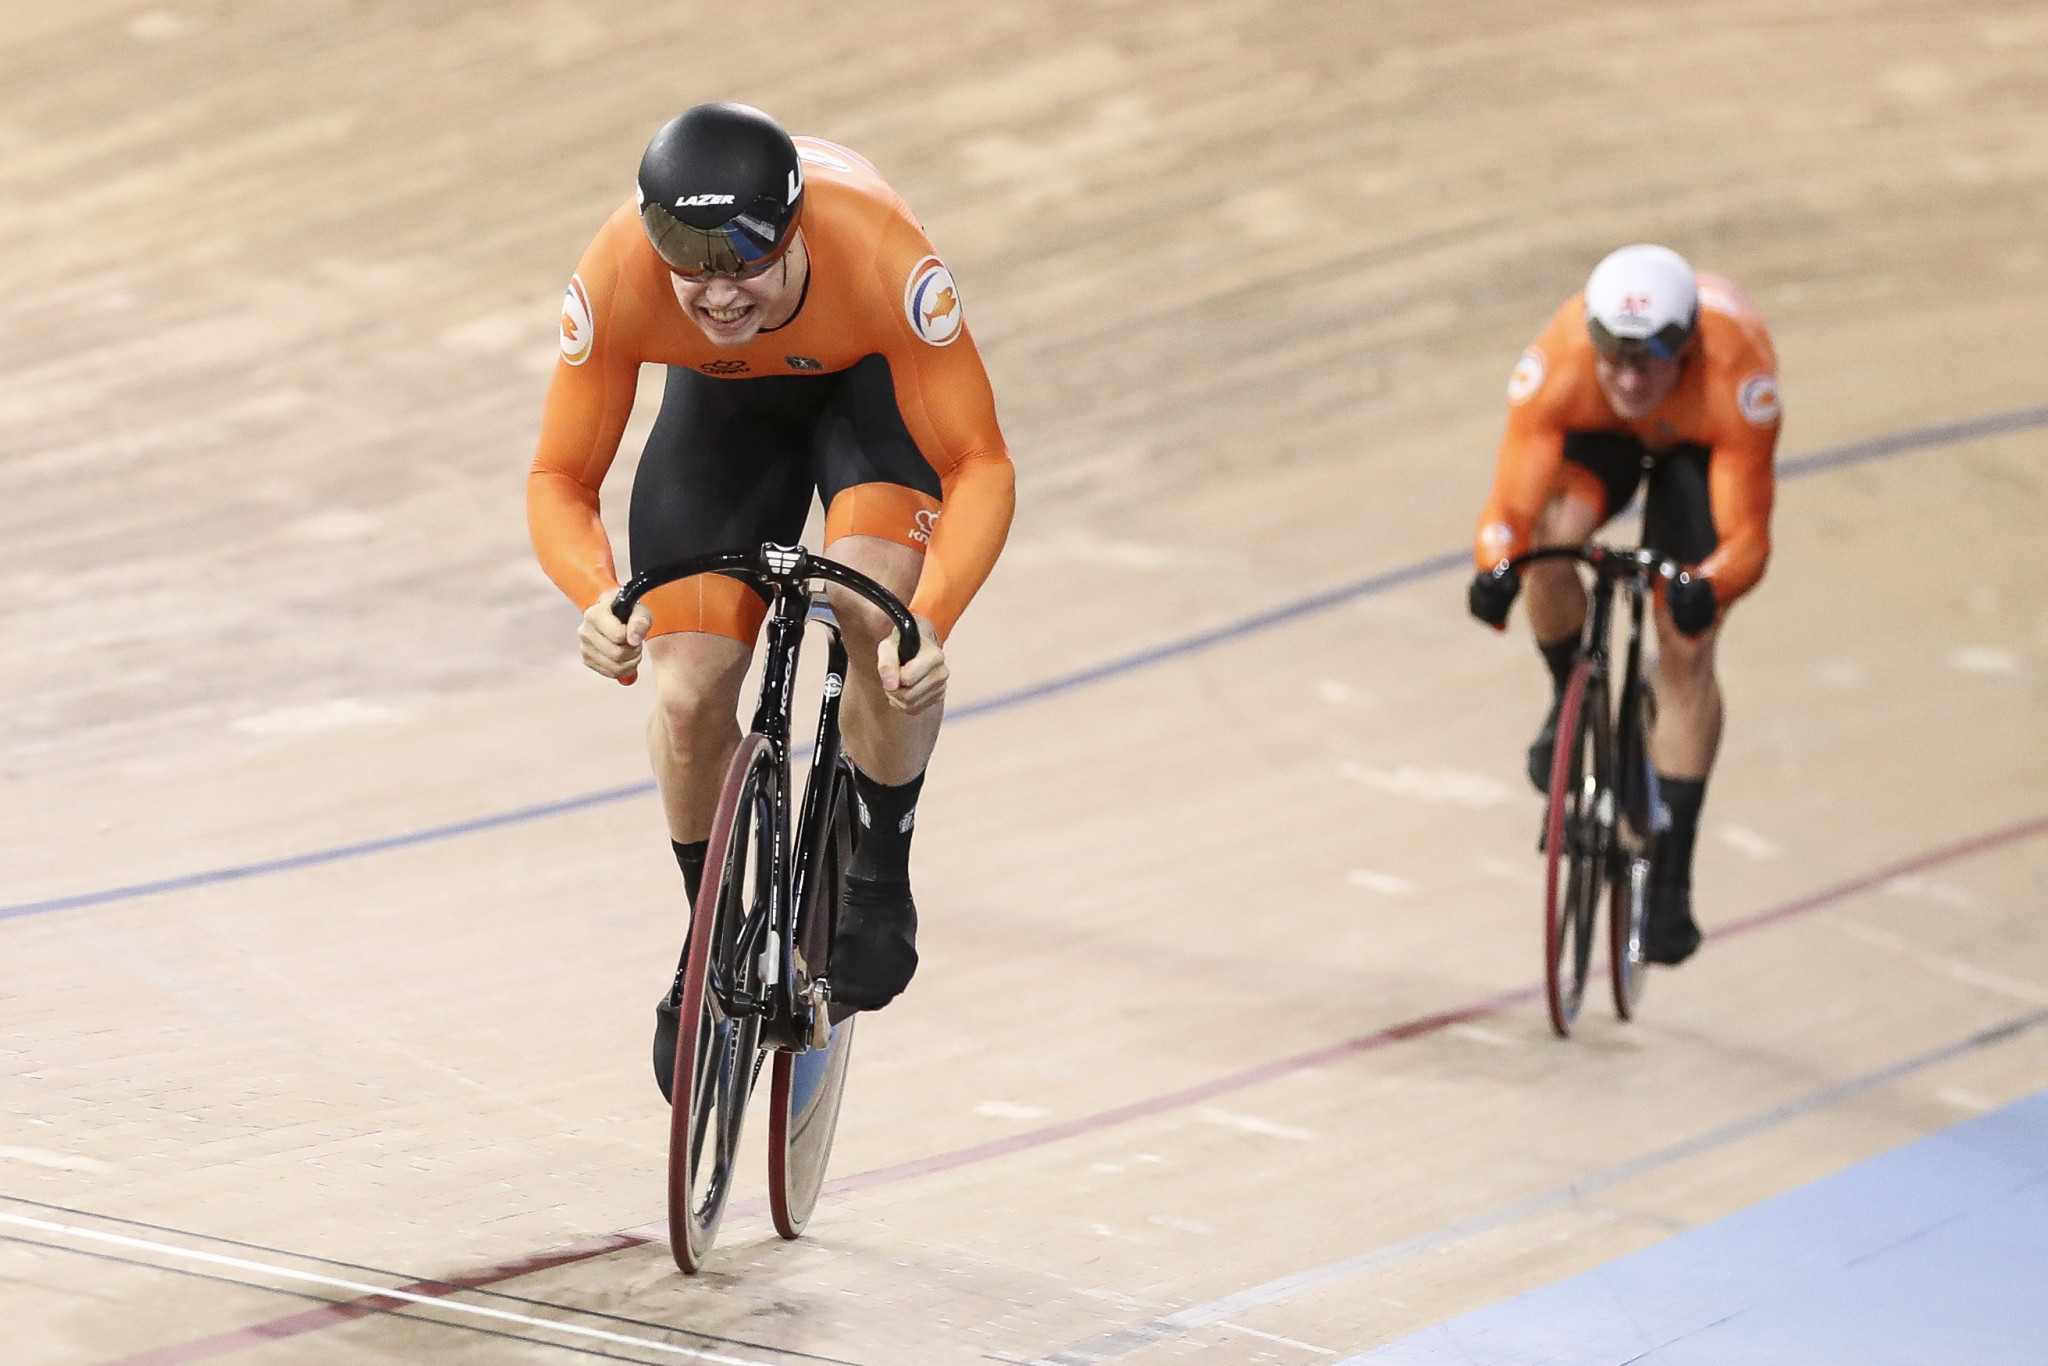 The UCI Track Cycling World League comes as part of an overhaul of track cycling competitions ©Getty Images